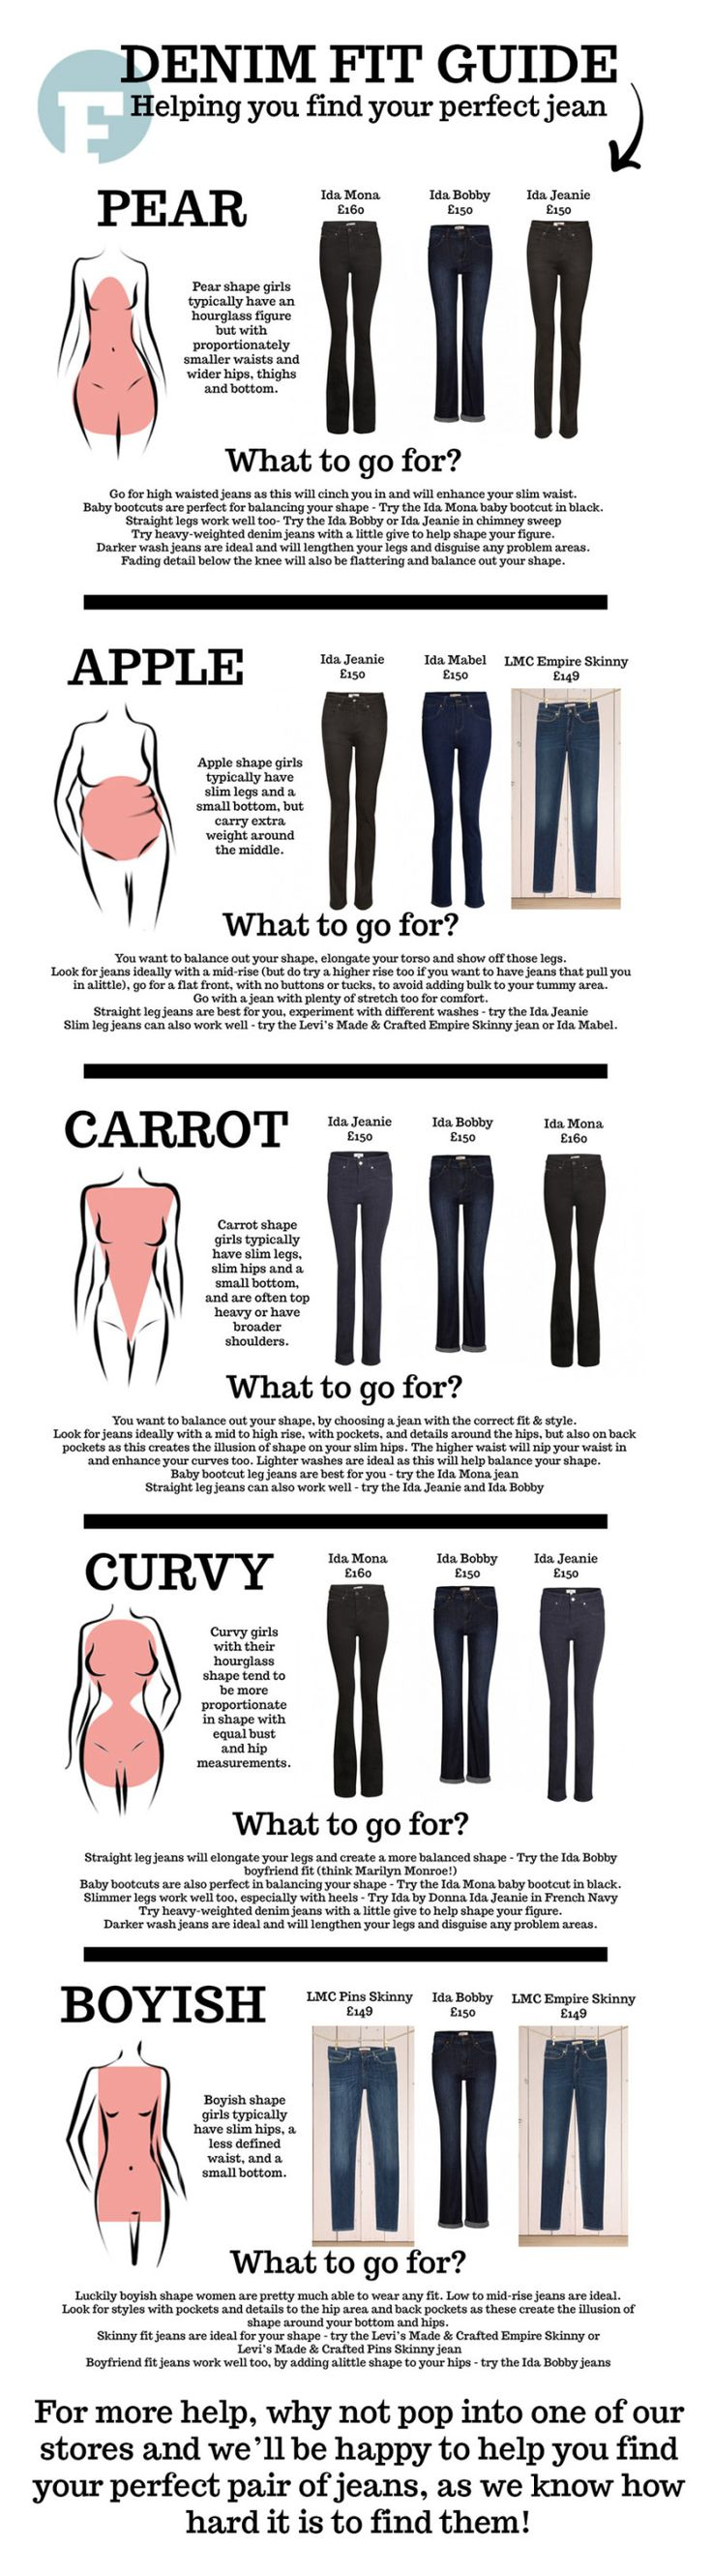 Our denim fit guide for different body shapes